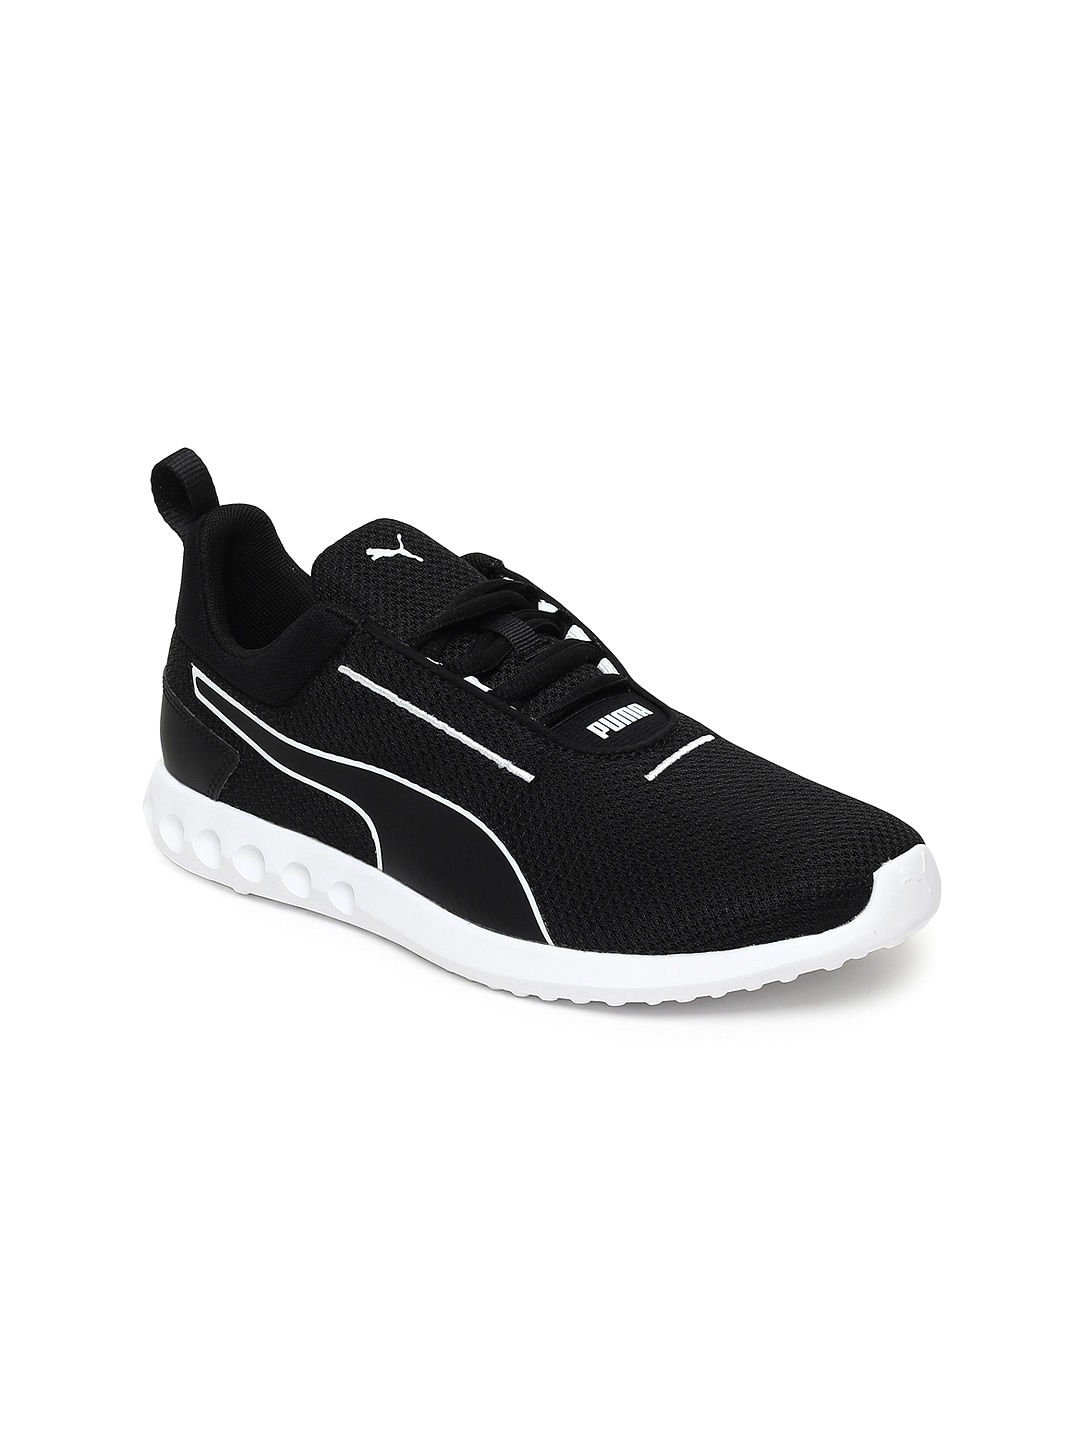 5f6117b2eb8 Puma Sports Shoes